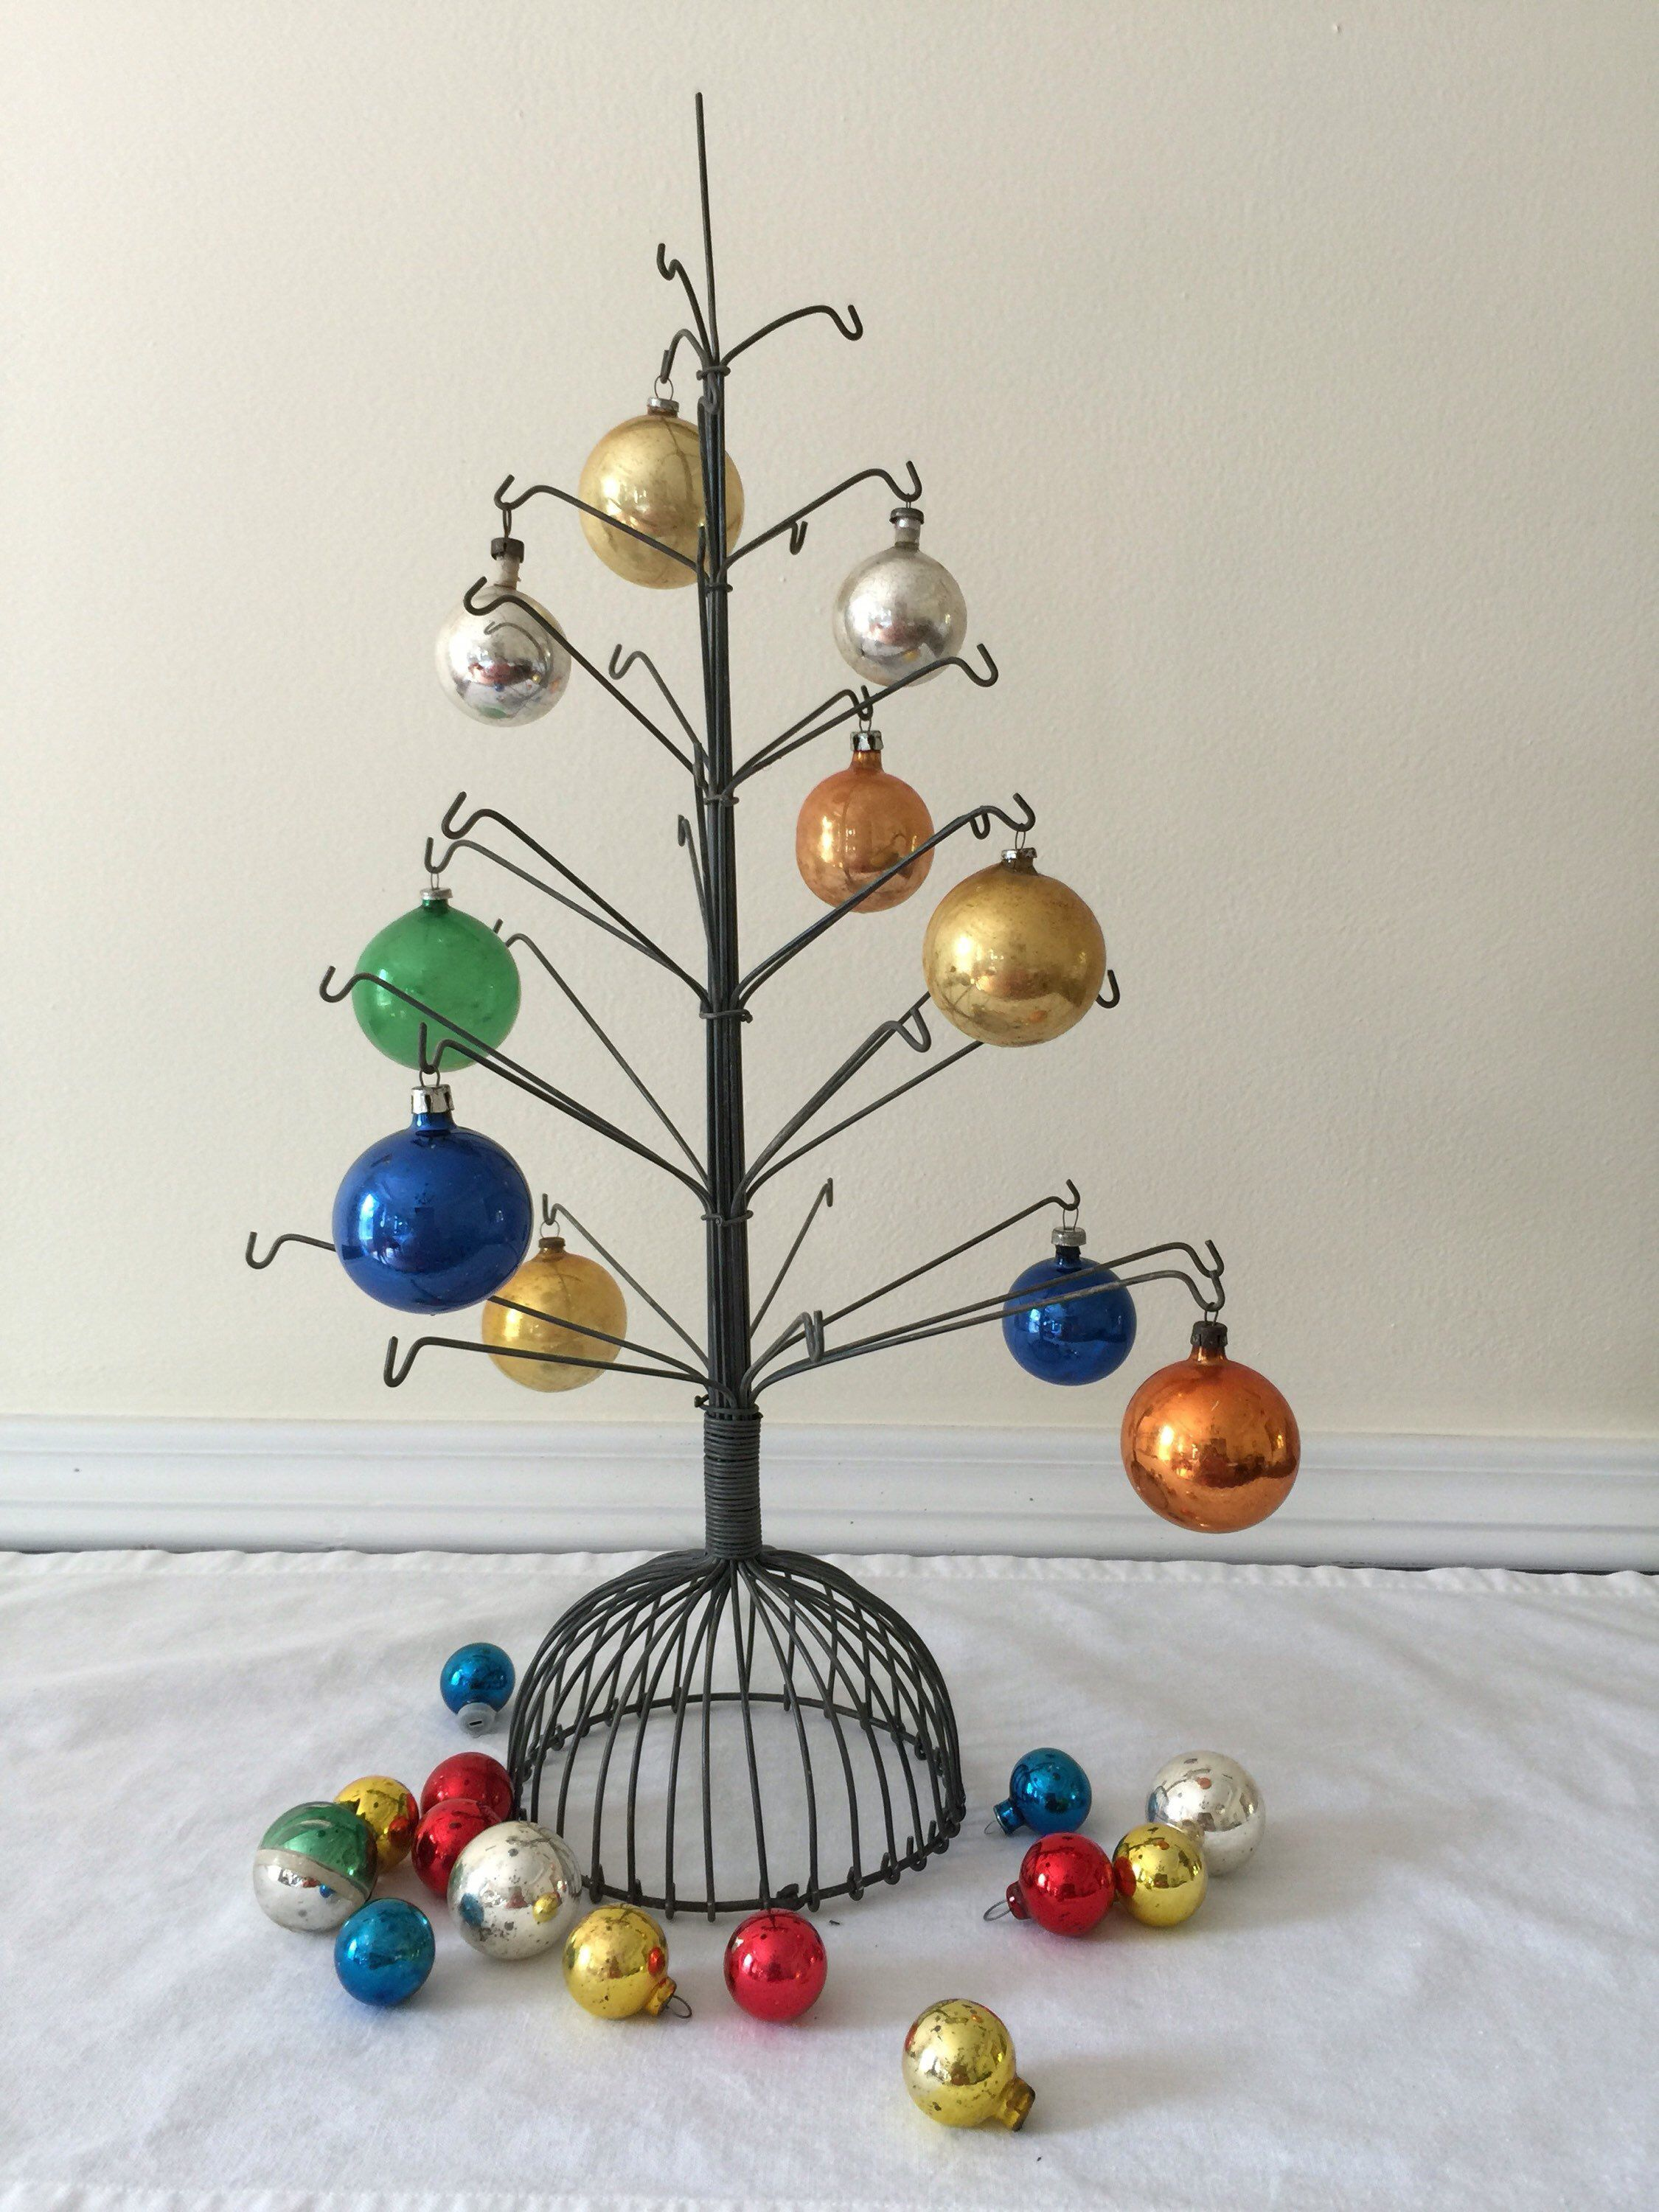 Vintage Wire Tree For Ornament Display Etsy Ornament Display Ornament Tree Display Wire Ornaments